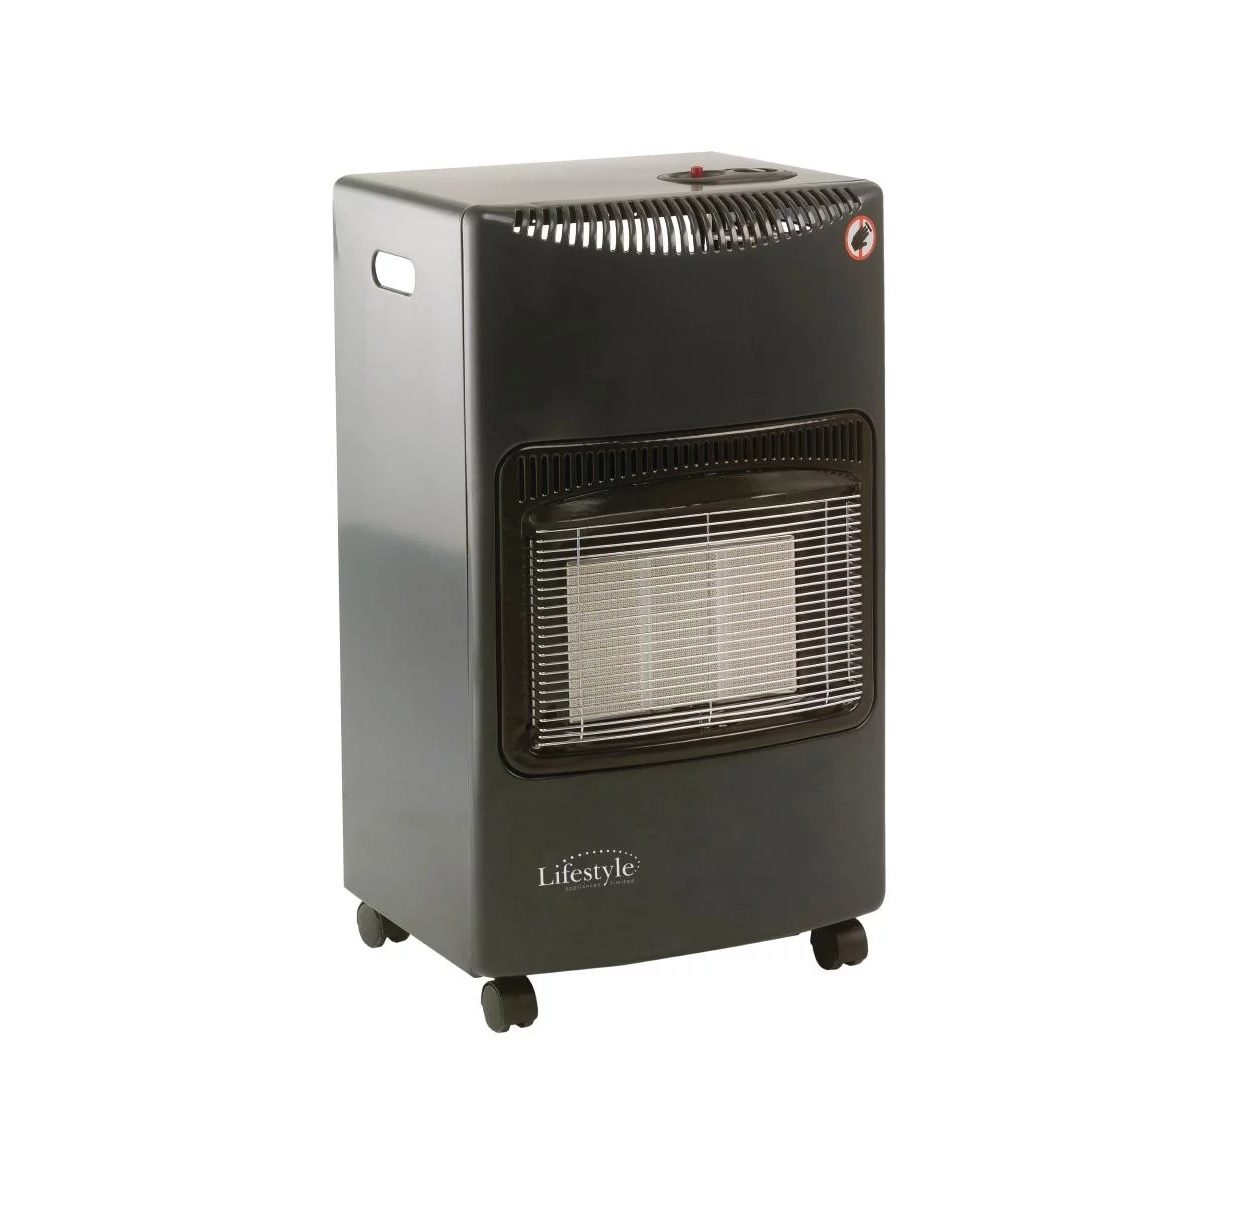 Lifestyle Seasons Warmth Radiant Cabinet Heater